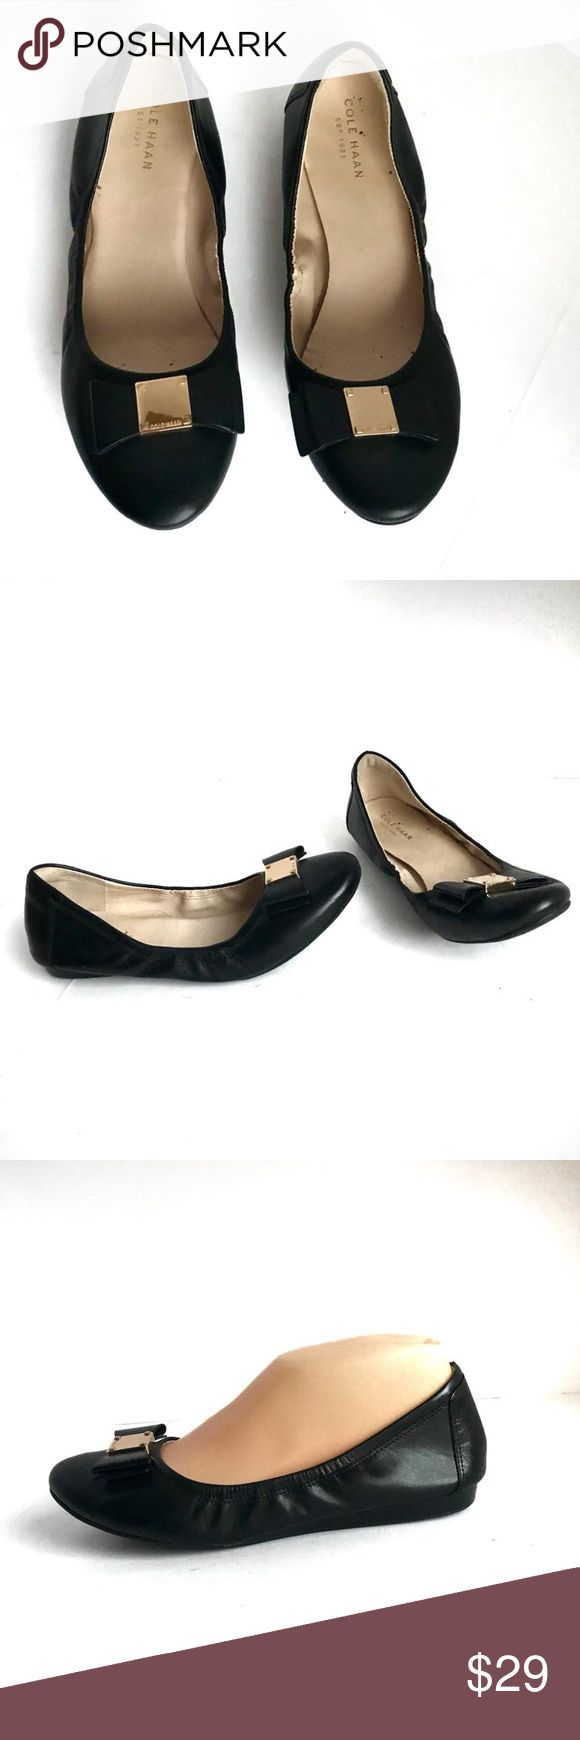 COLE HAAN Elsie Ballet II Flats 7B Black Leather Cole Haan  Ballet Flats Black with Gold Hardware Excellent Condition Size 7 B  Please see all photos Thank you!!! Cole Haan Shoes Flats & Loafers